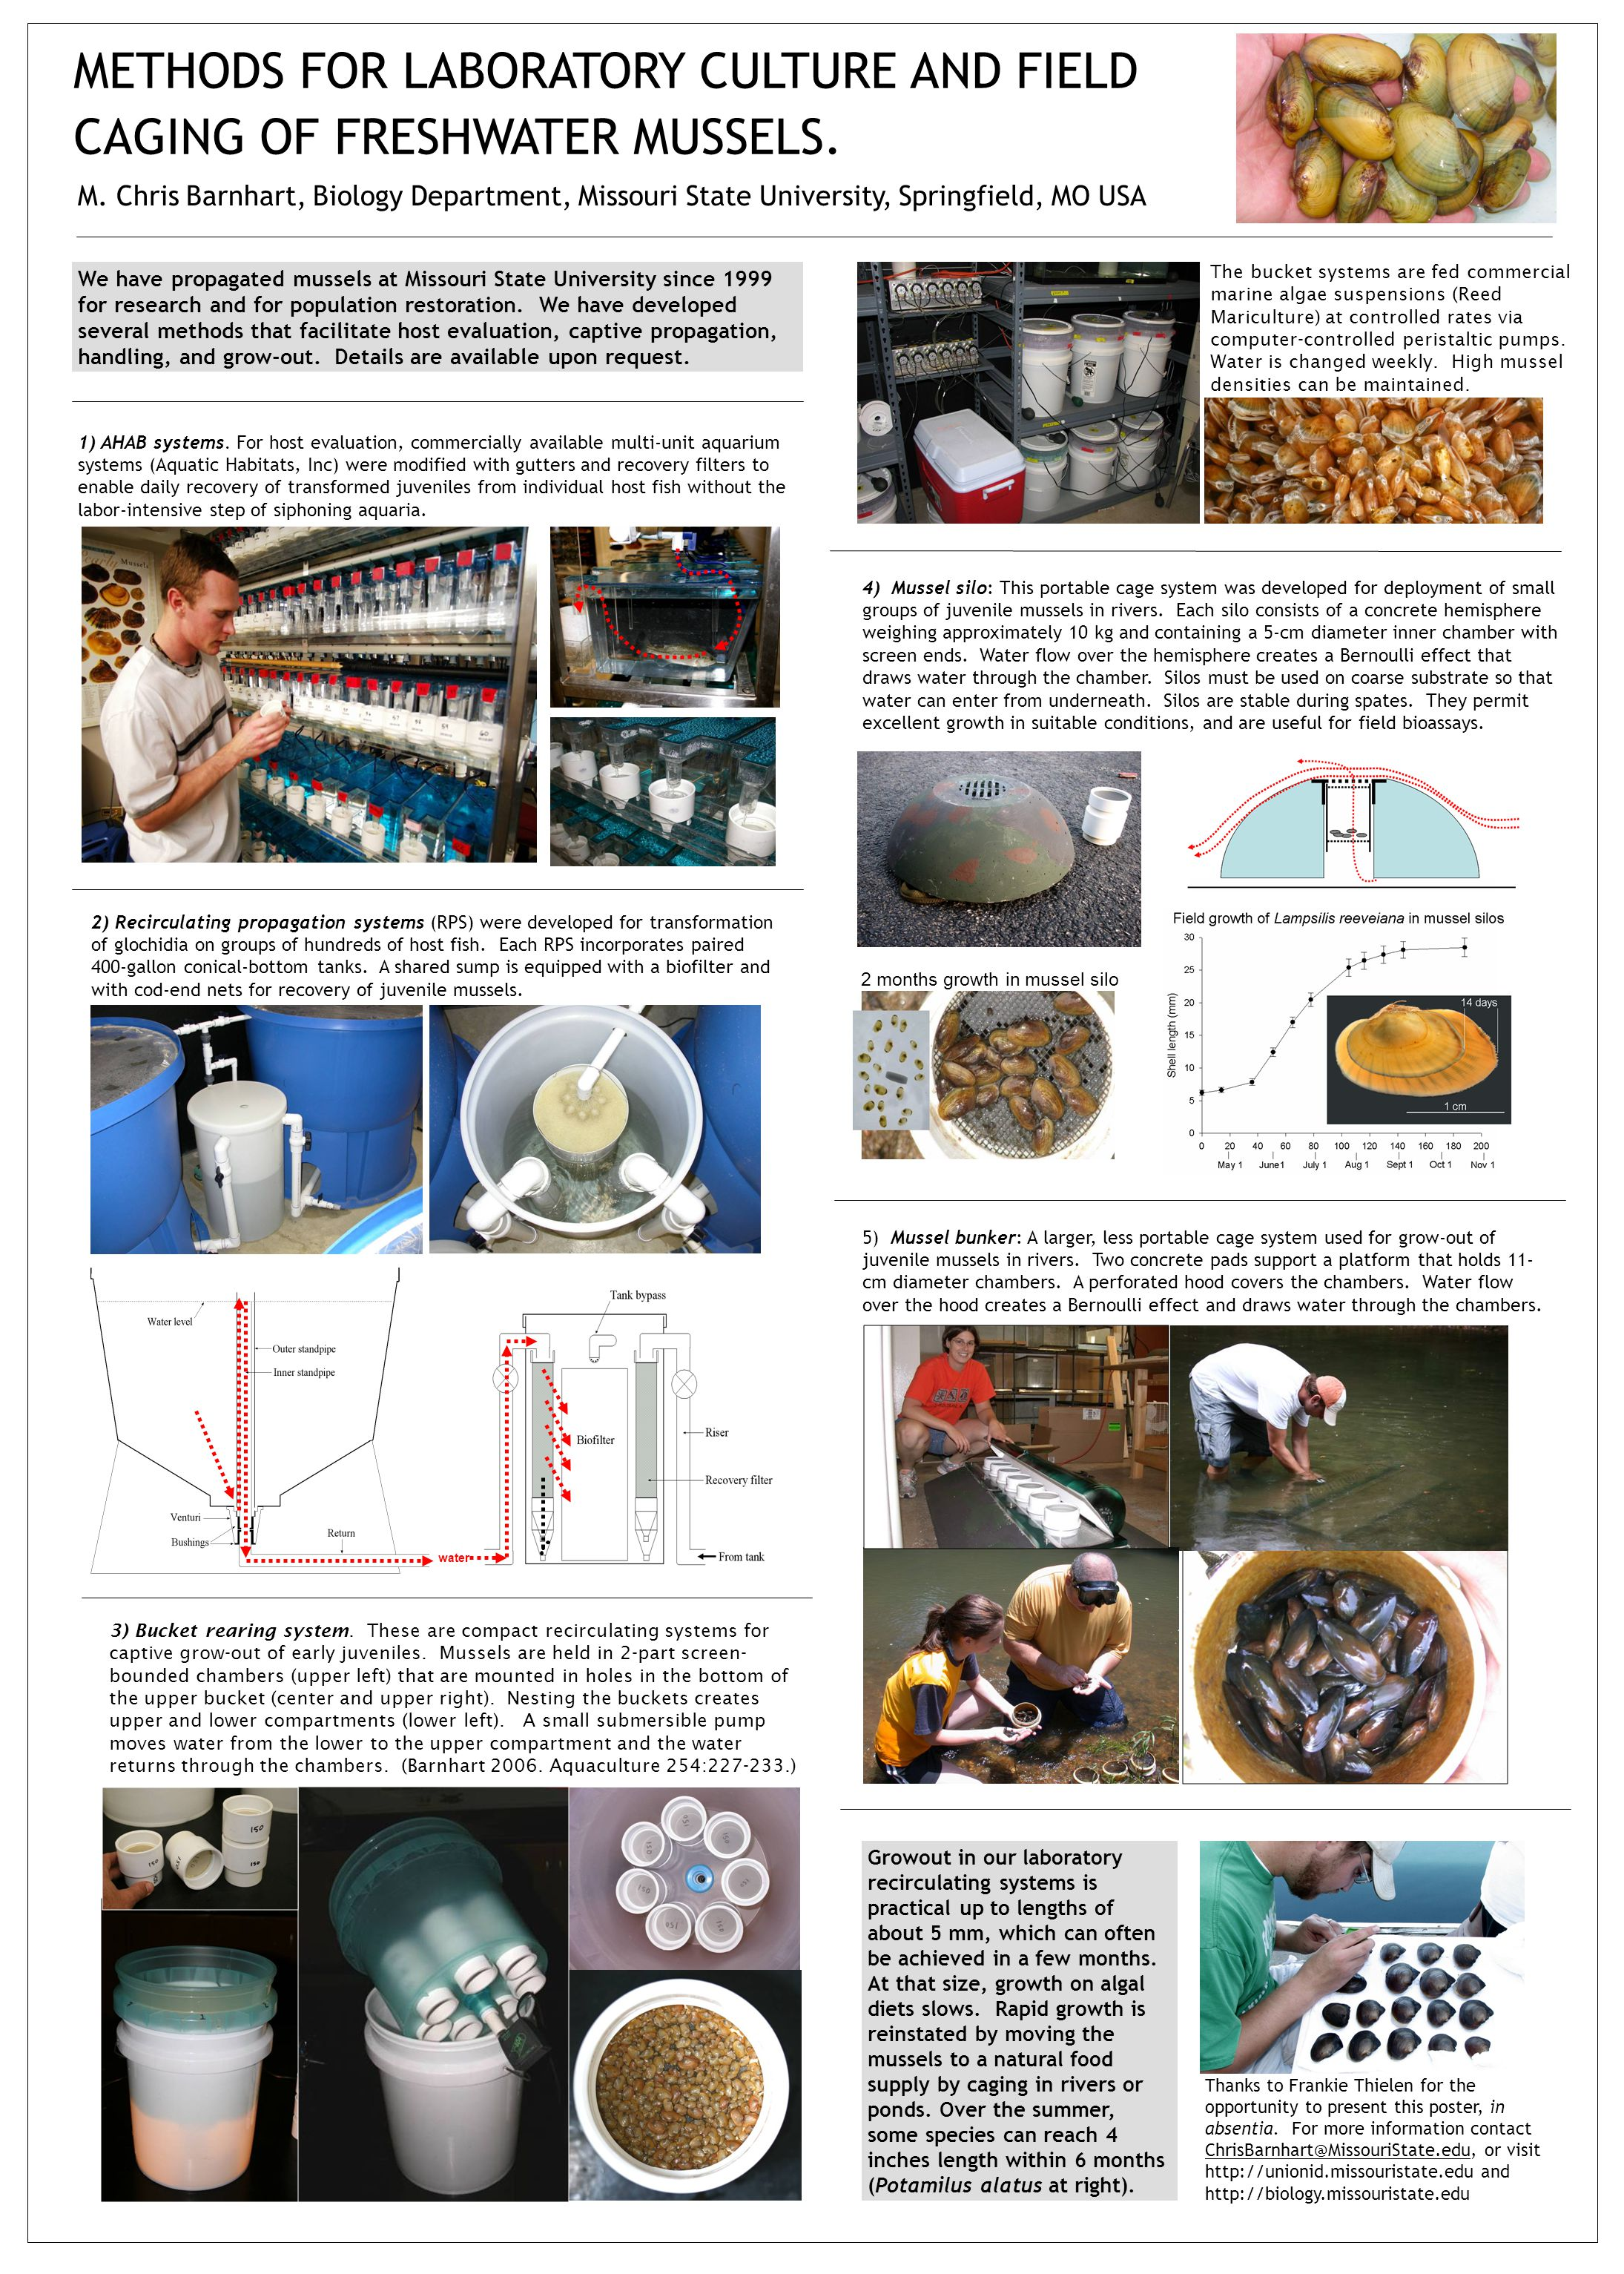 METHODS FOR LABORATORY CULTURE AND FIELD CAGING OF FRESHWATER MUSSELS.